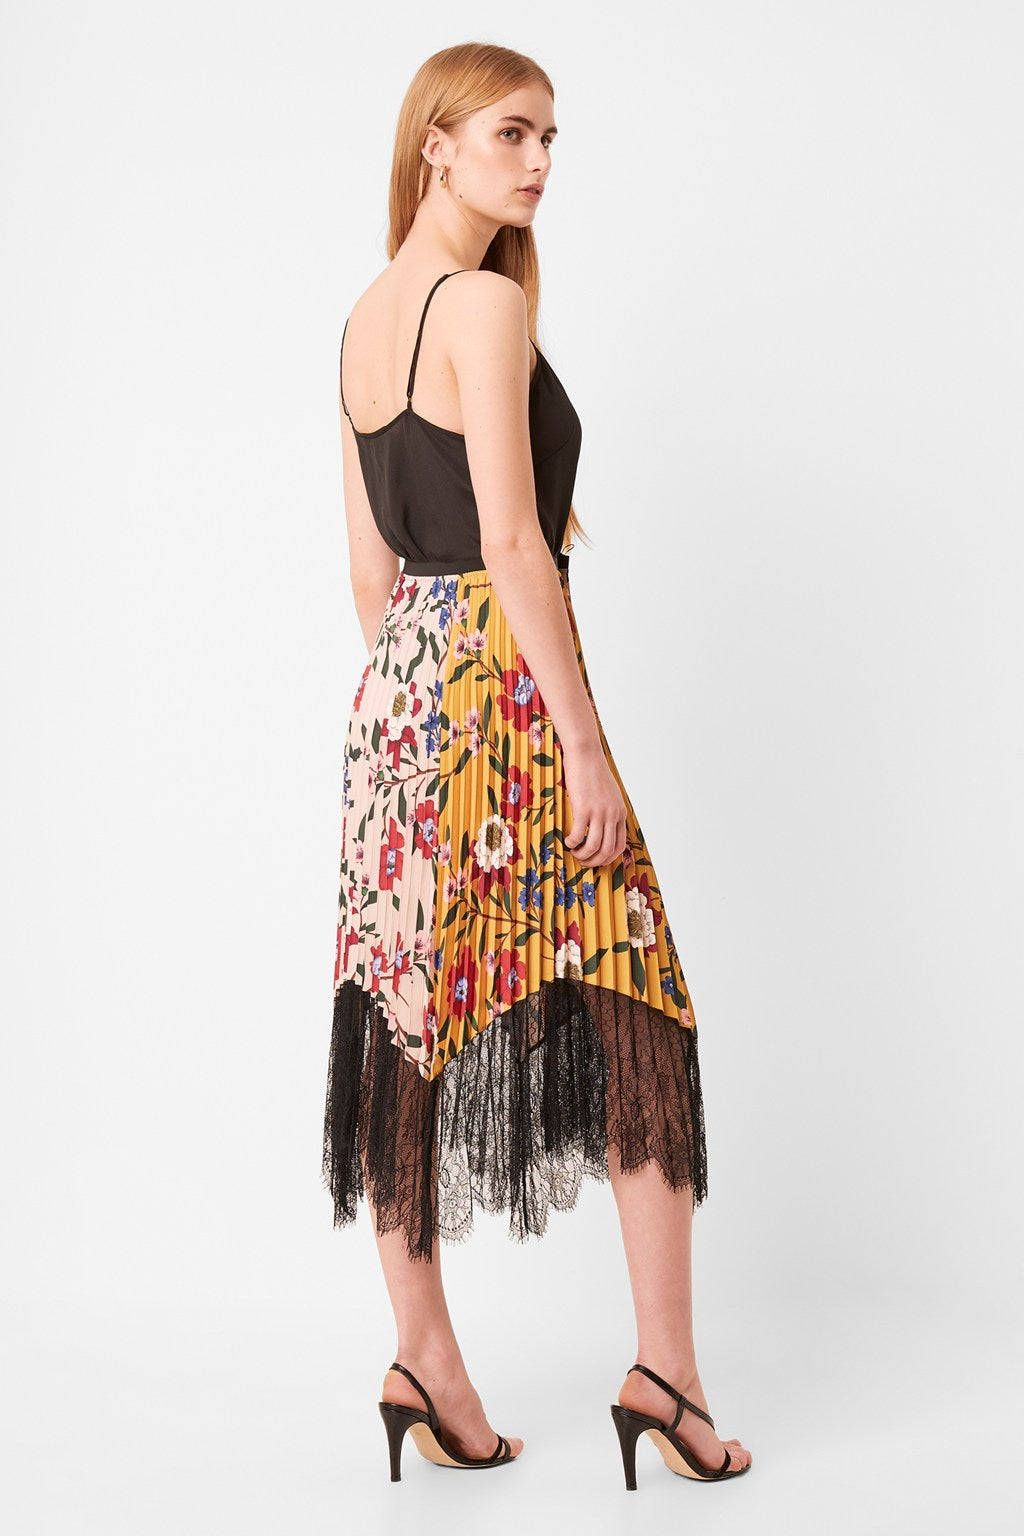 French Connection Abeona Drape Lace Print Pleated Skirt - 73NAI